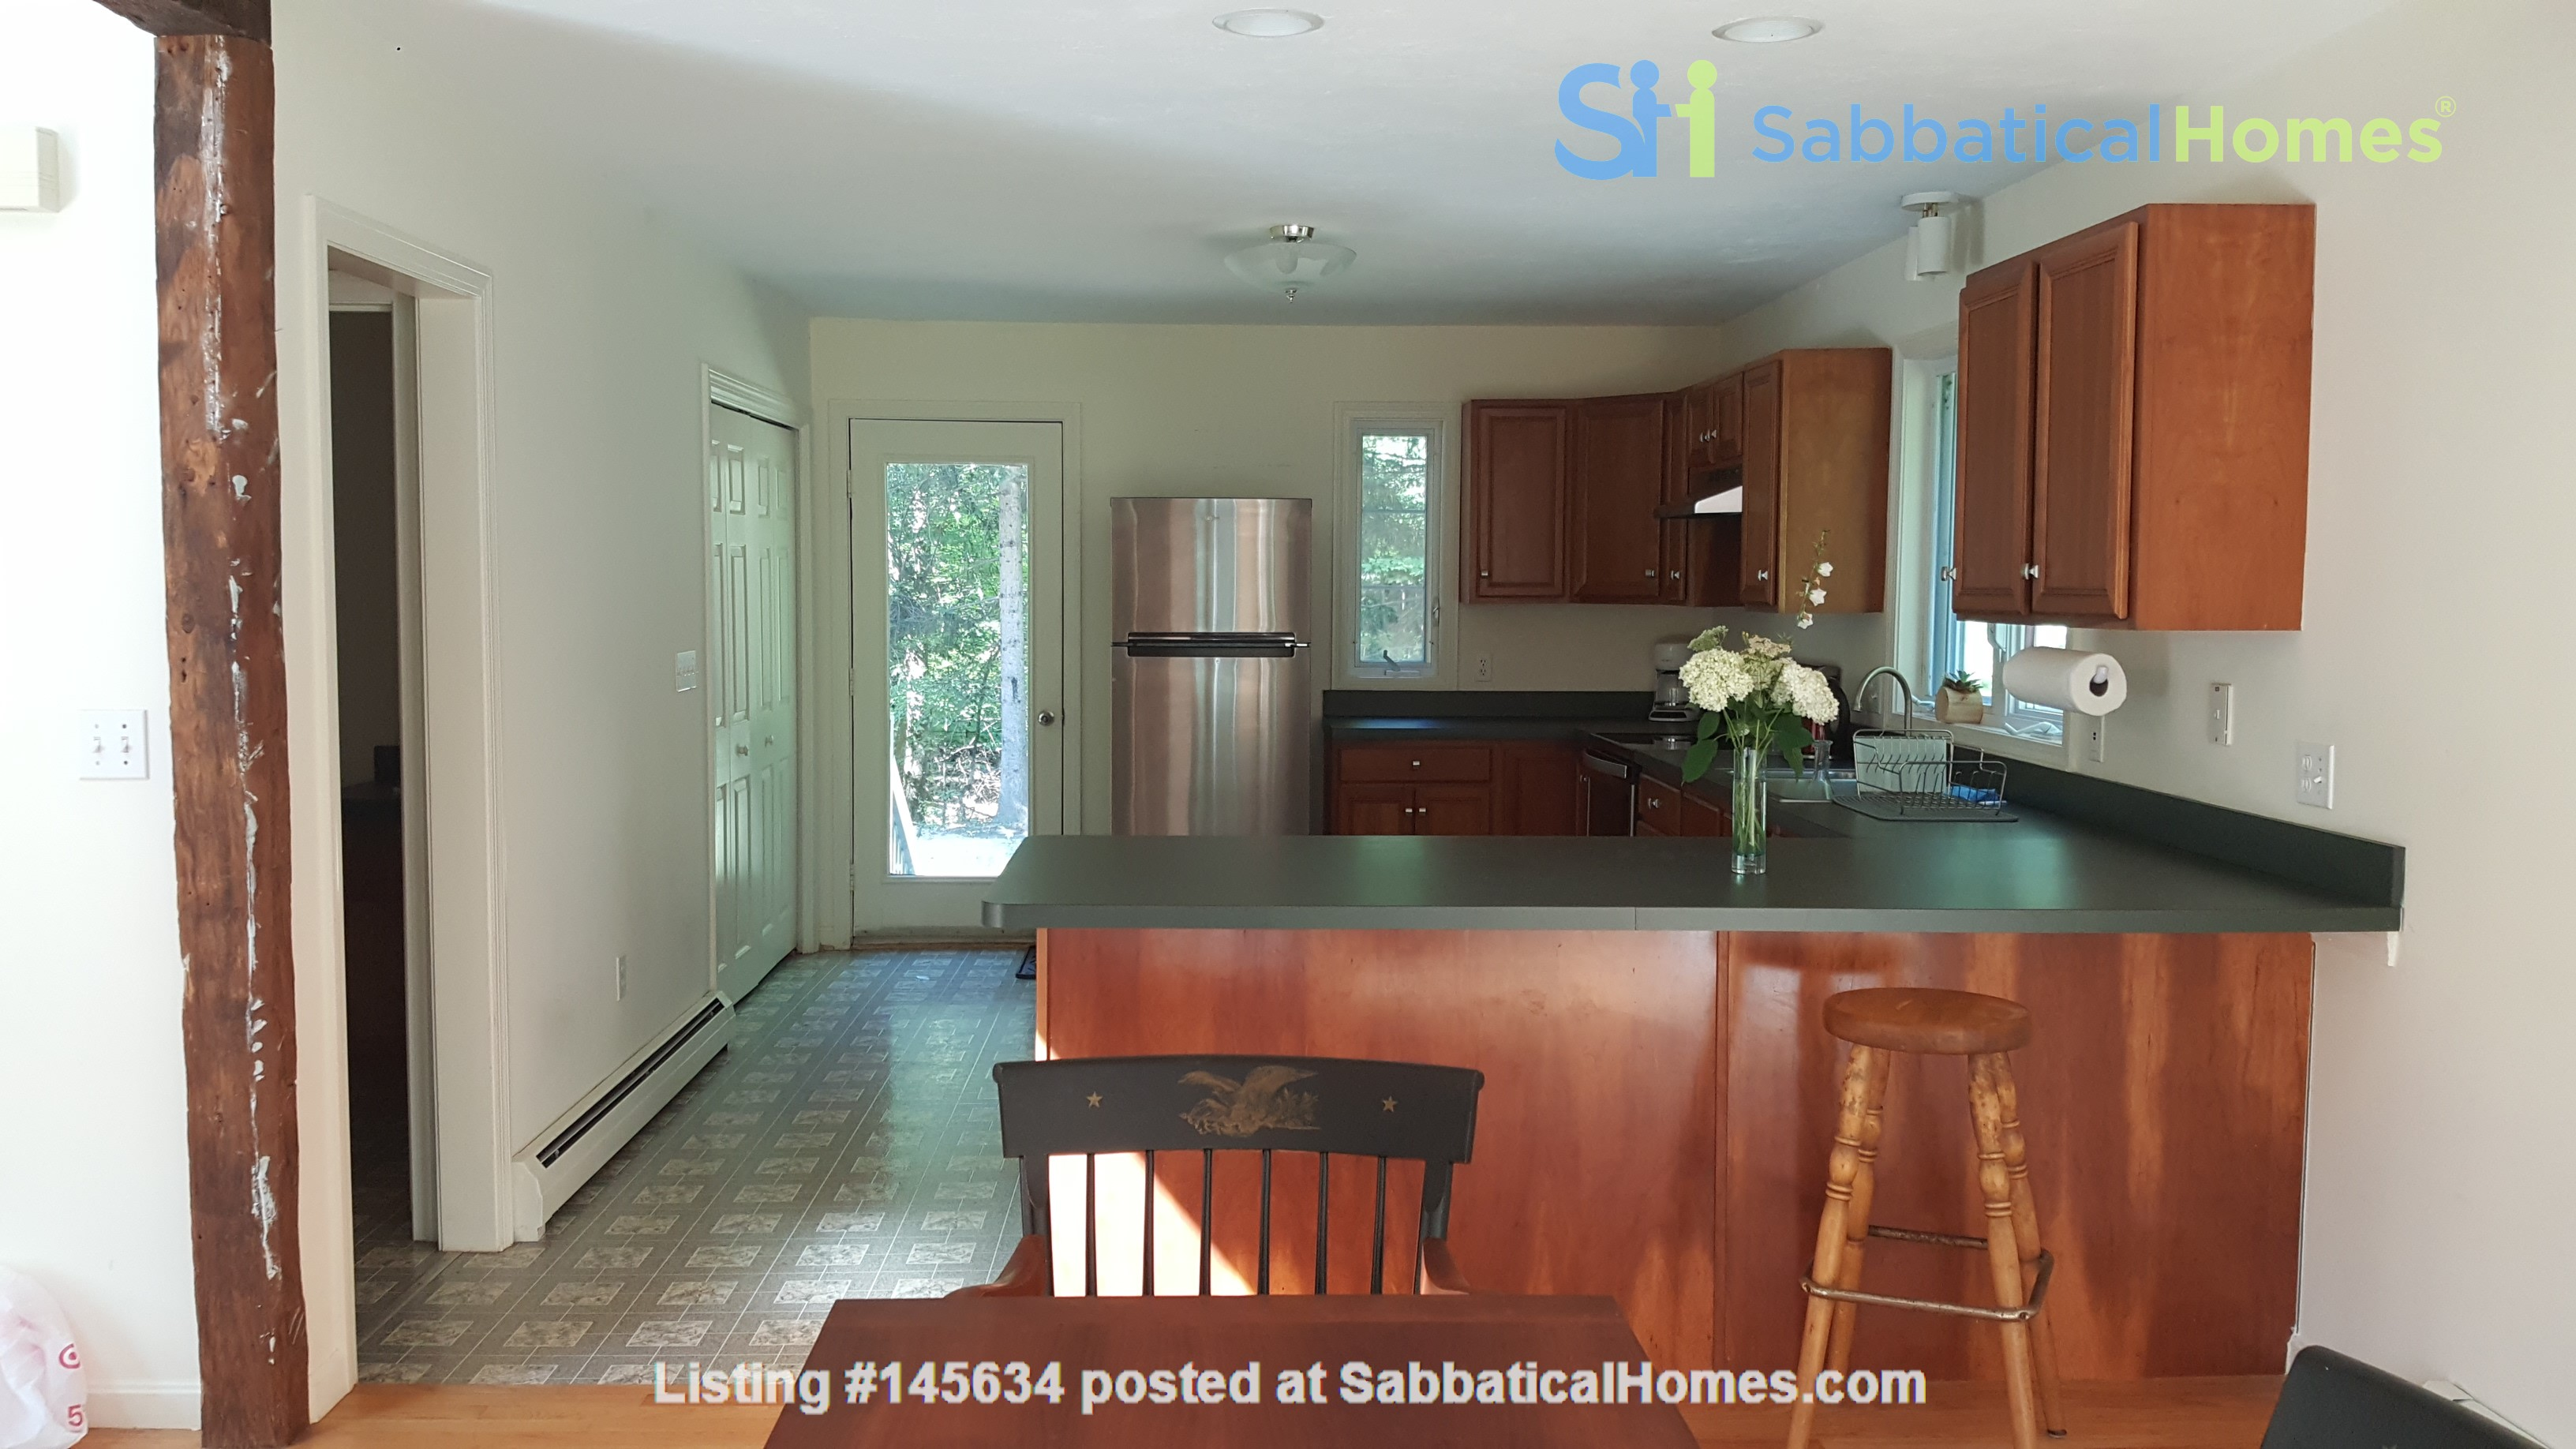 2 bedroom country house / 25 miles North of Boston and Cambridge Home Rental in Andover, Massachusetts, United States 2